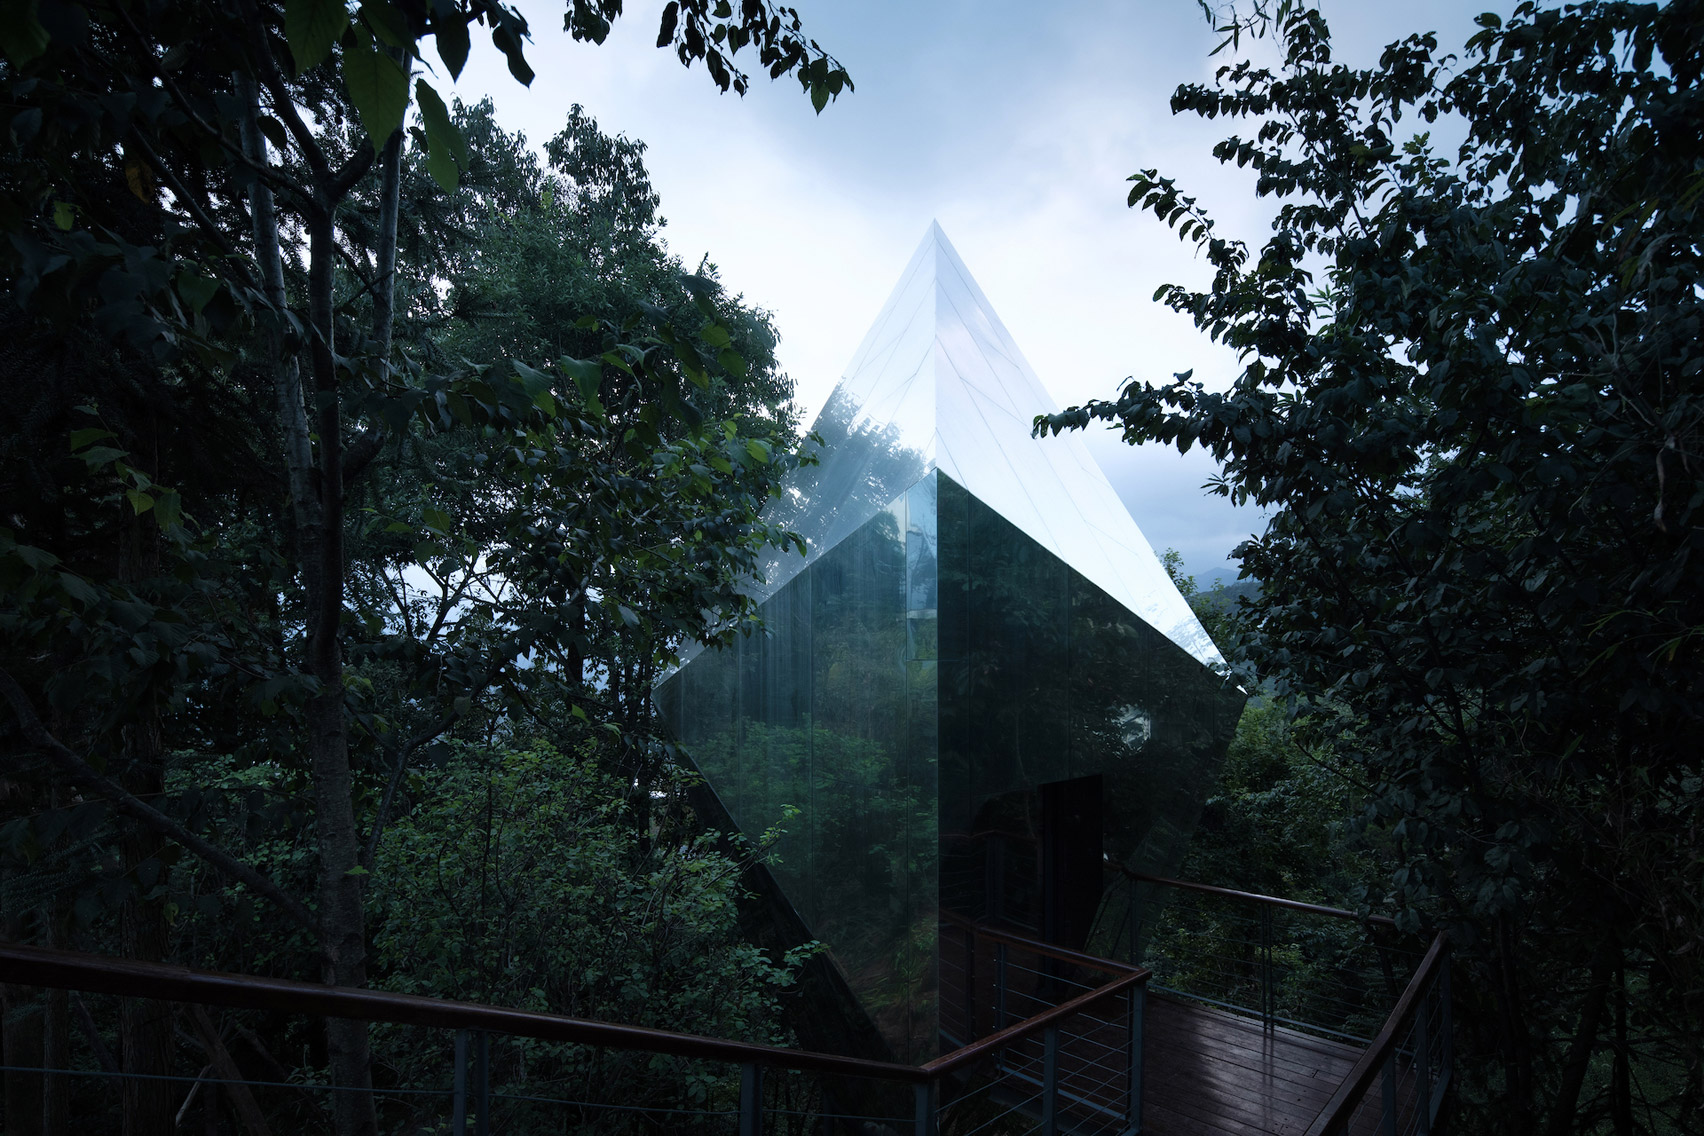 Mirrored cabins sit within the tree-line